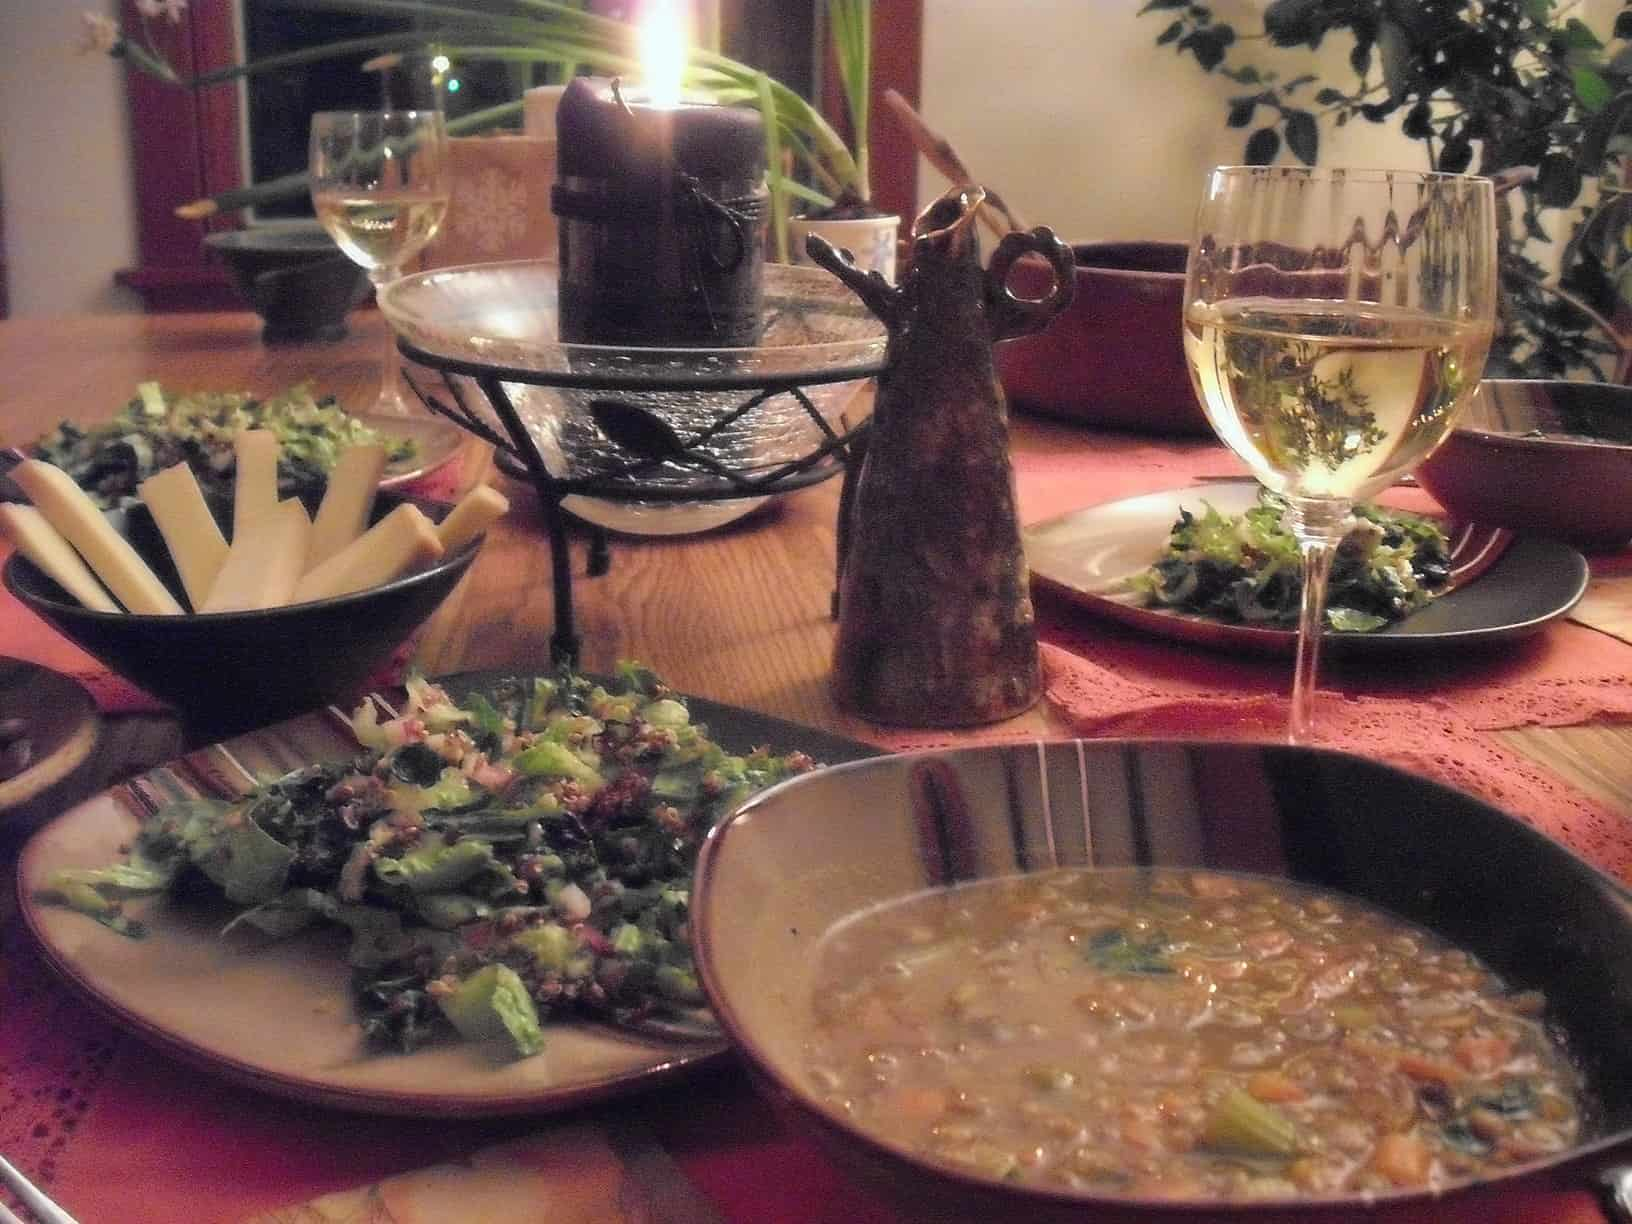 Country French Lentil Soup in a bowl alongside salad, local cheese and wine.